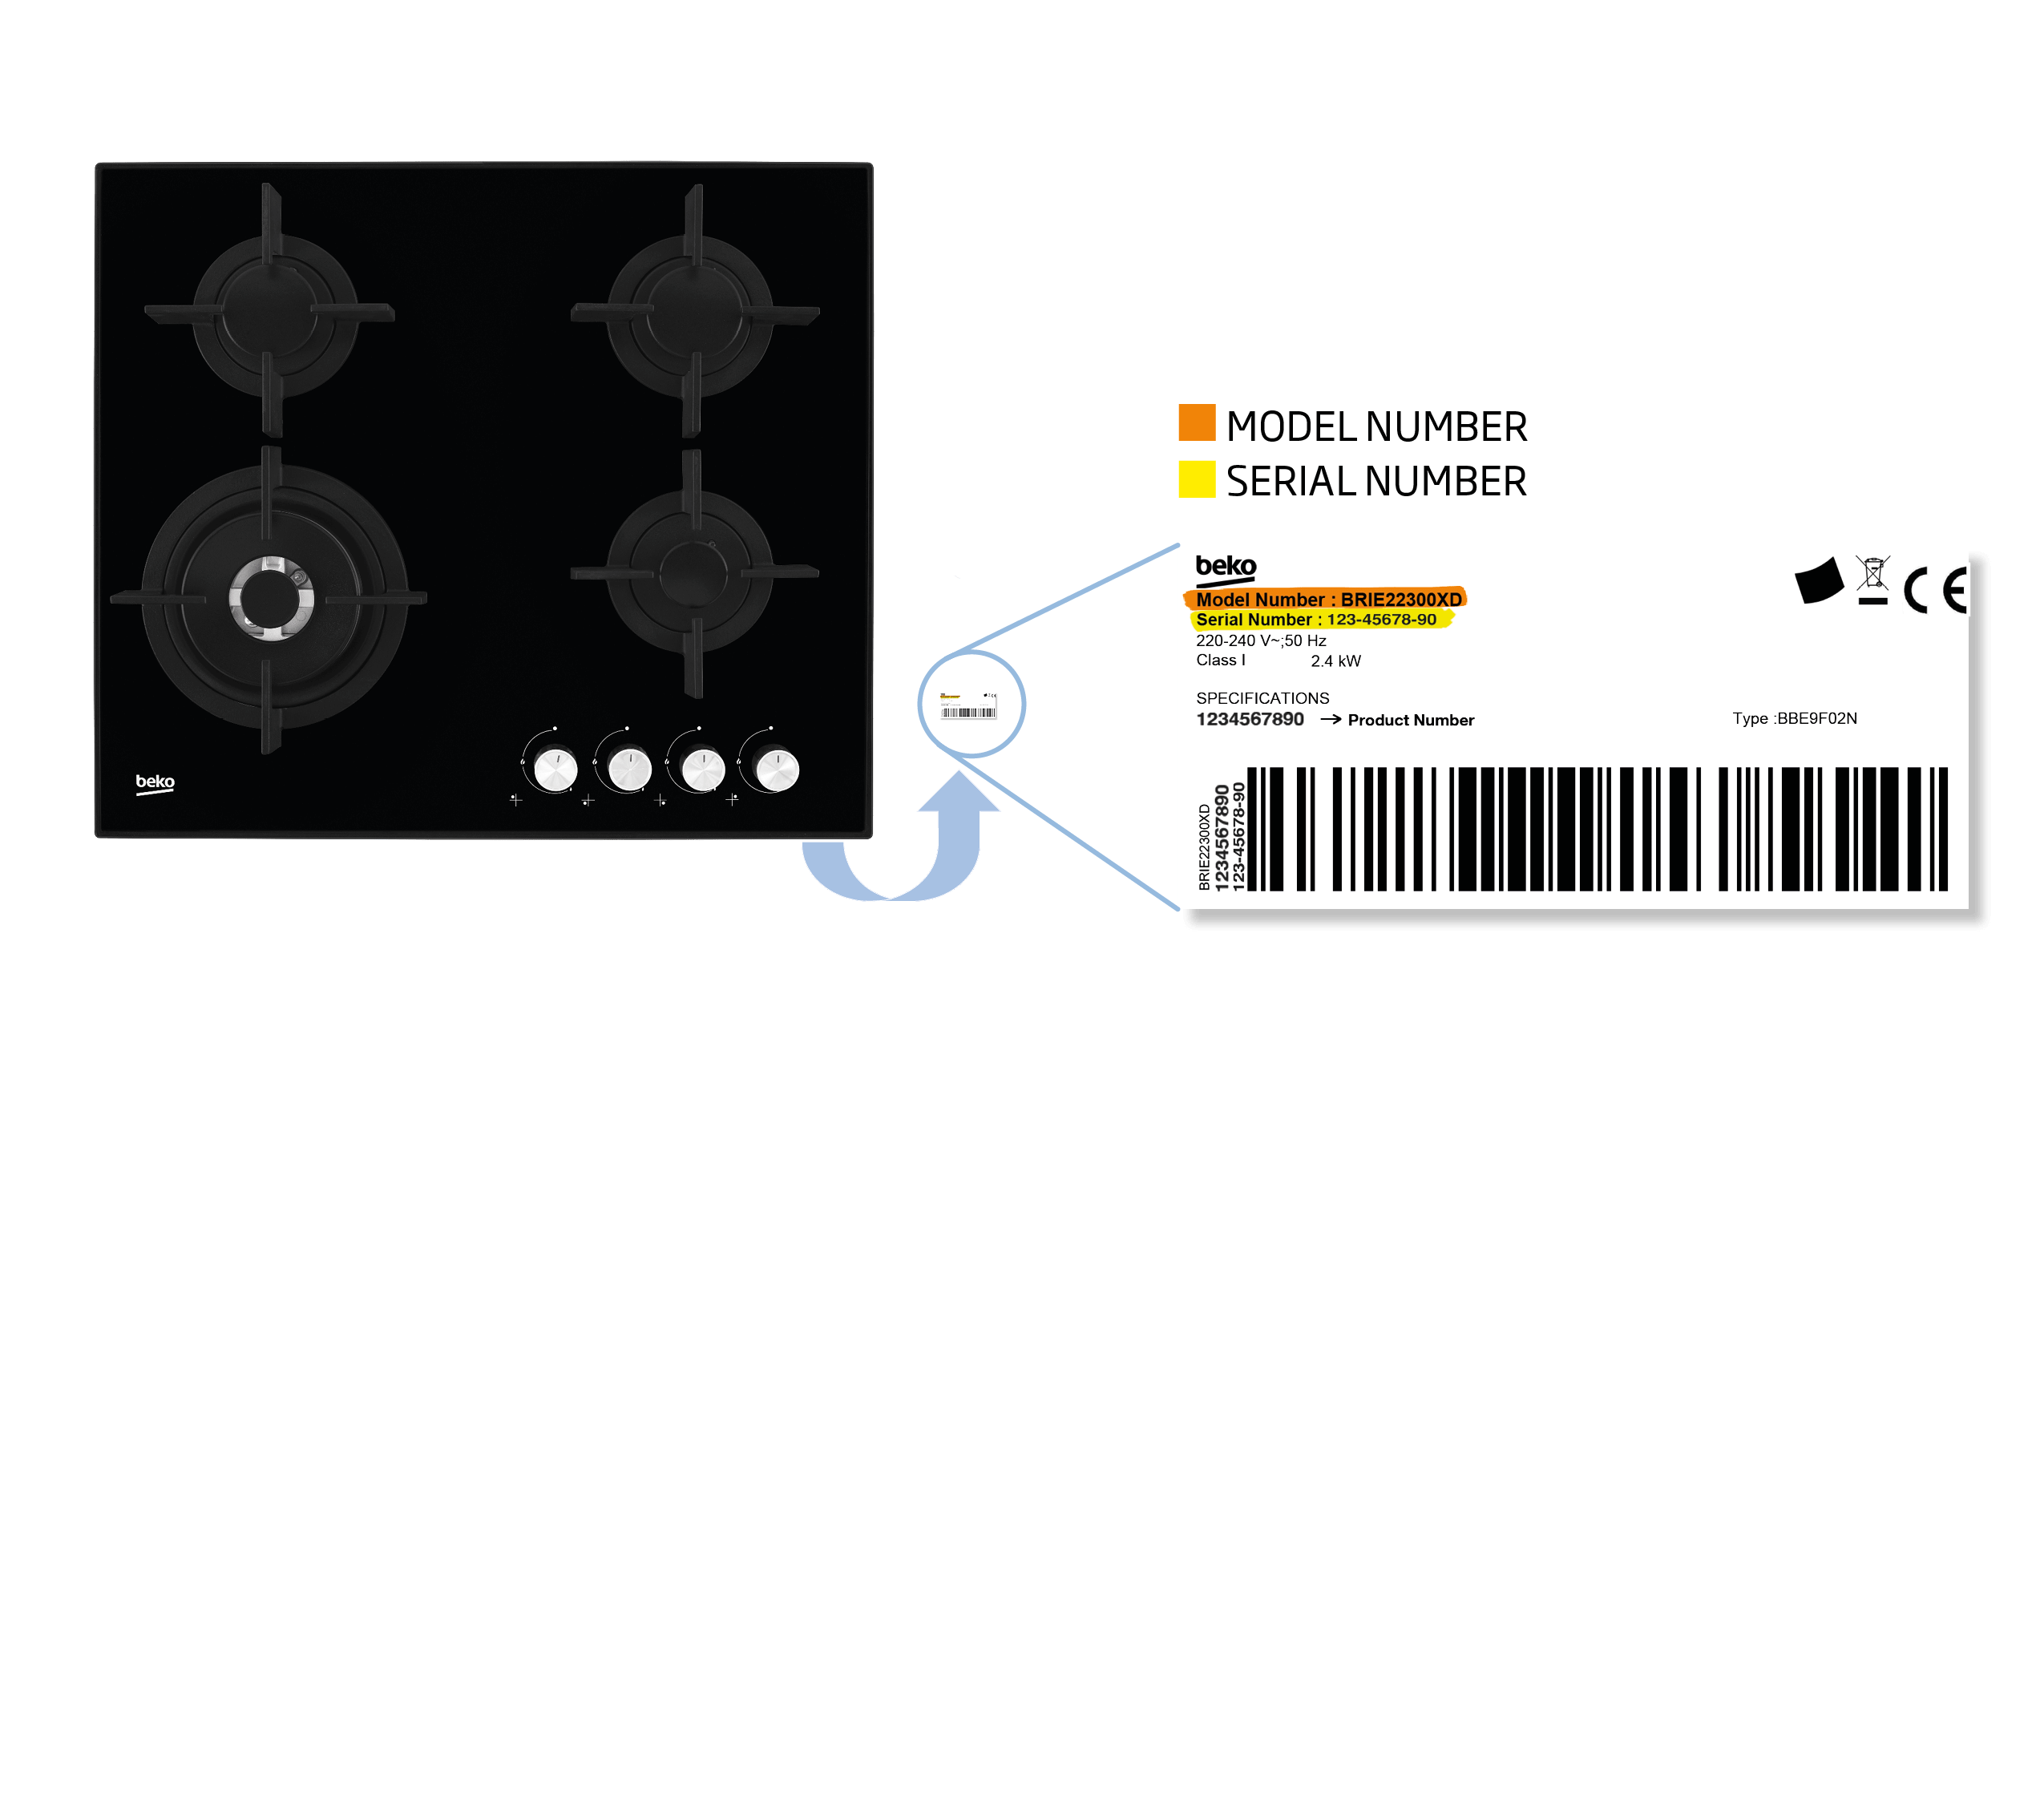 built-in gas Hobs model number